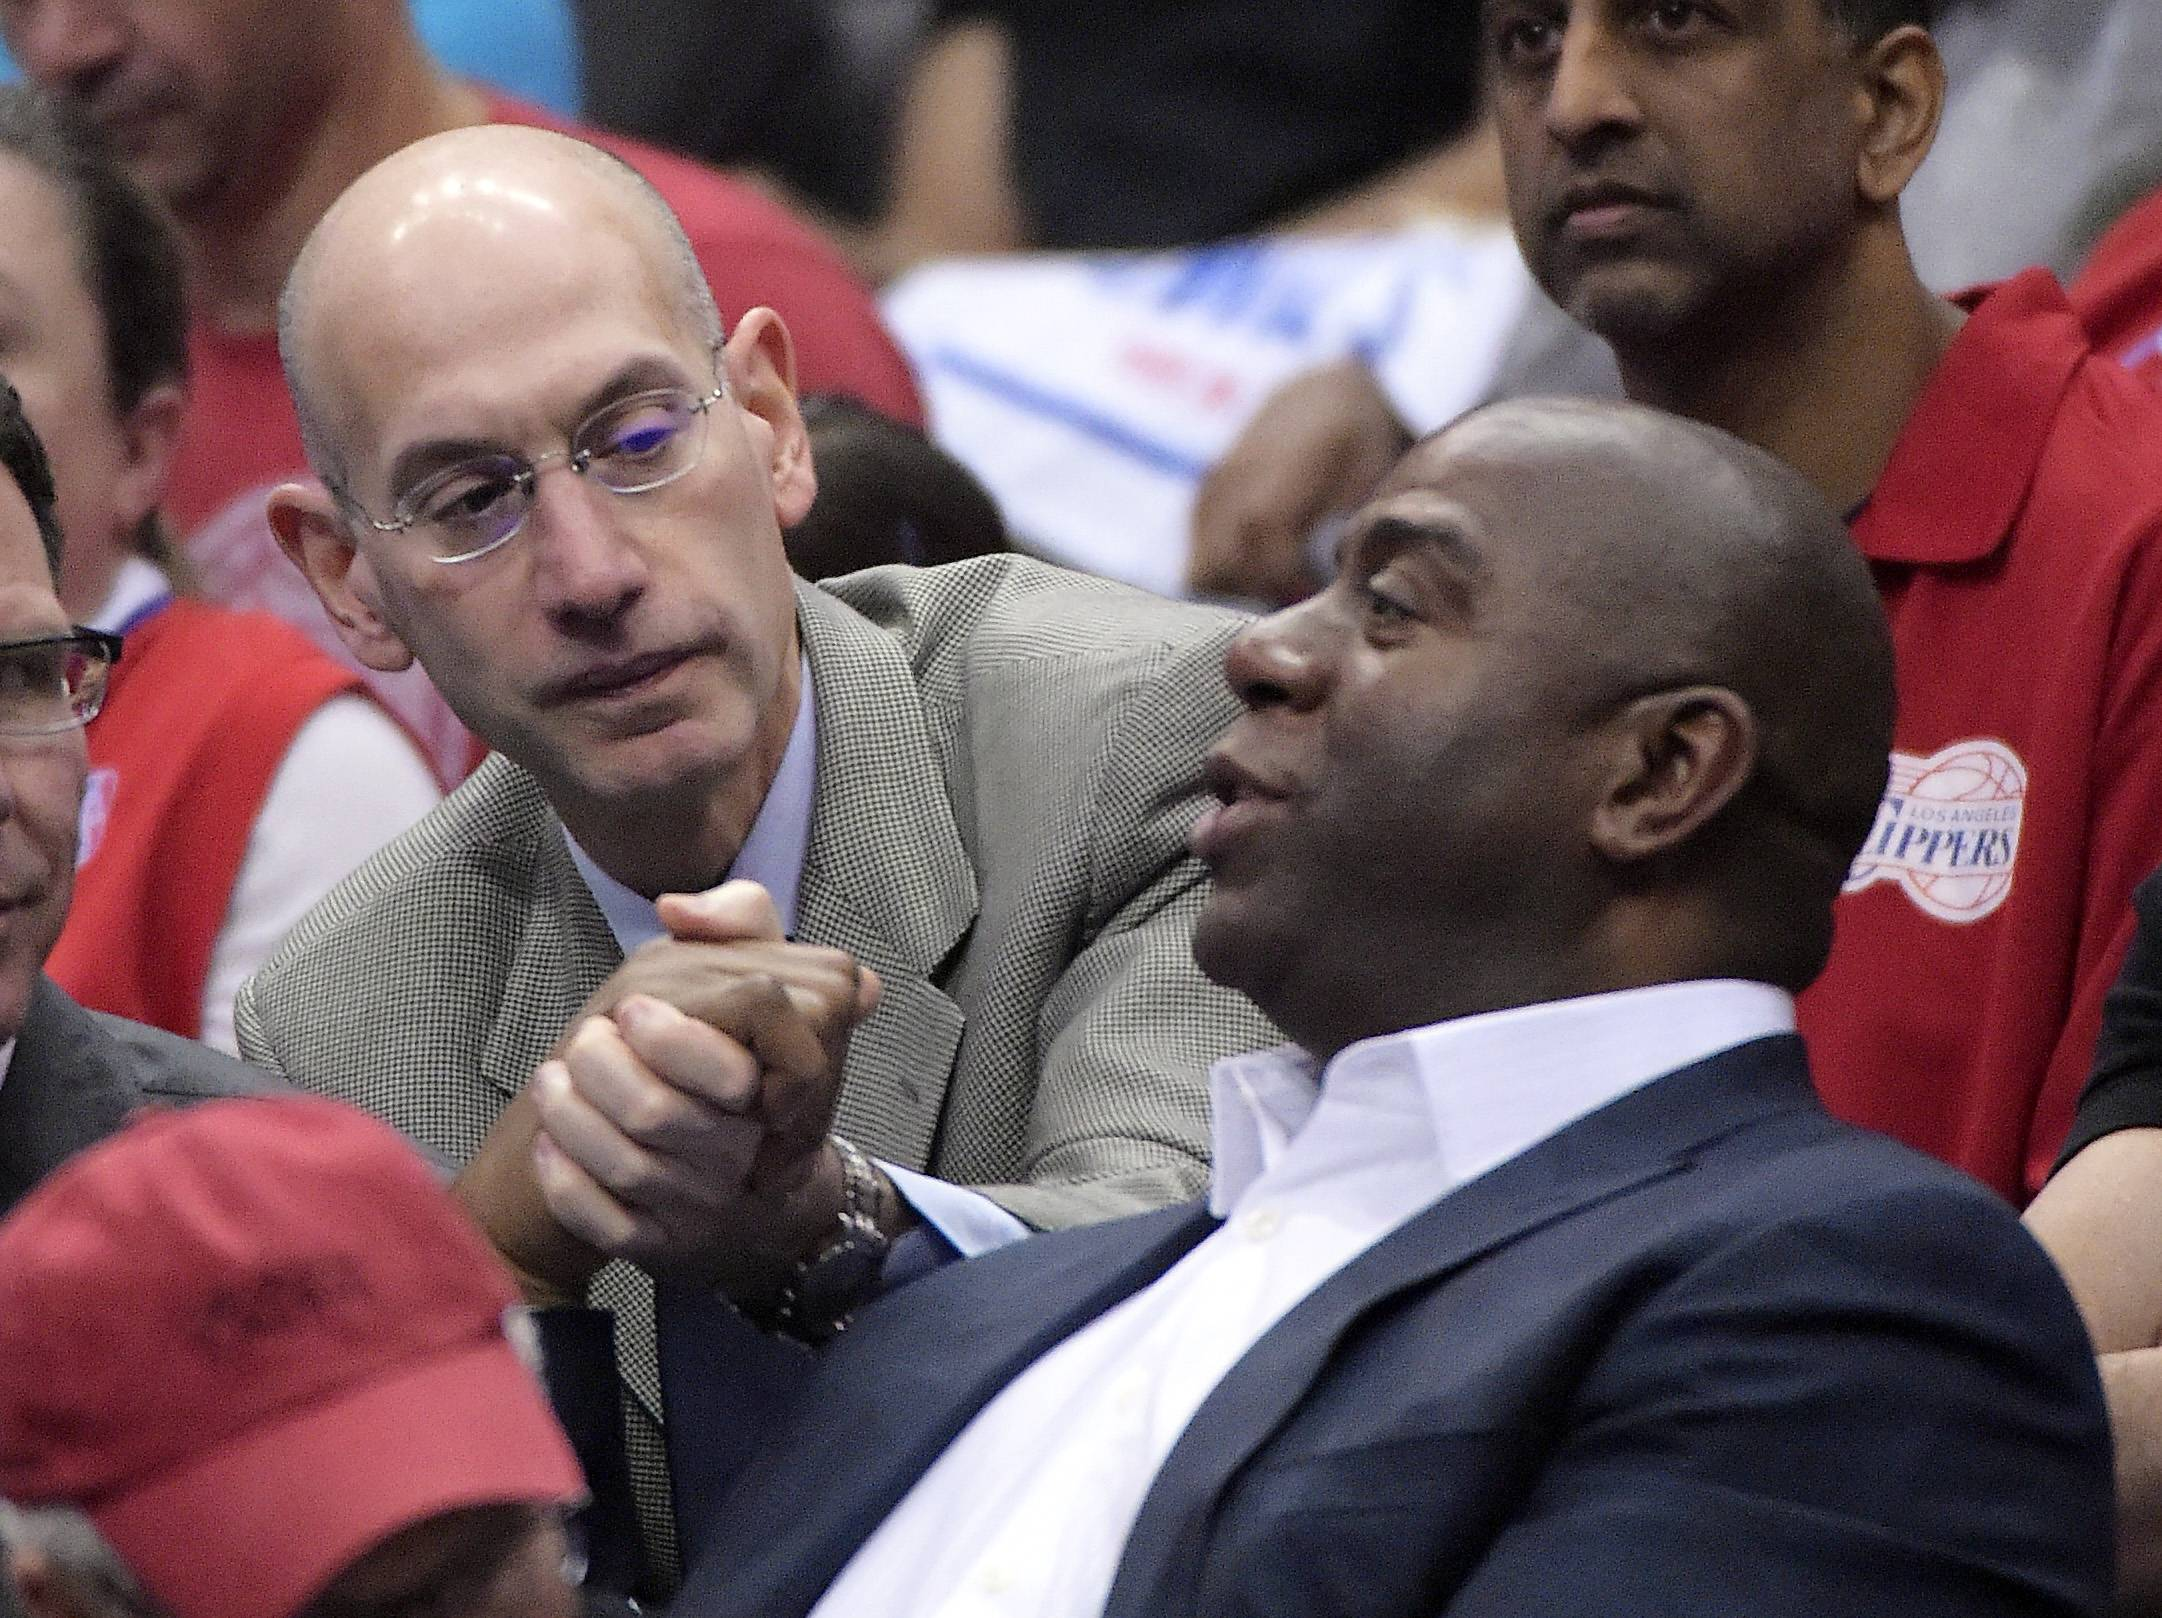 NBA Commissioner Adam Silver, left, shakes hands with Magic Johnson as they watch the Los Angeles Clippers play the Oklahoma City Thunder in the first half of Game 4 of the Western Conference semifinal NBA basketball playoff series, Sunday, May 11, 2014, in Los Angeles.